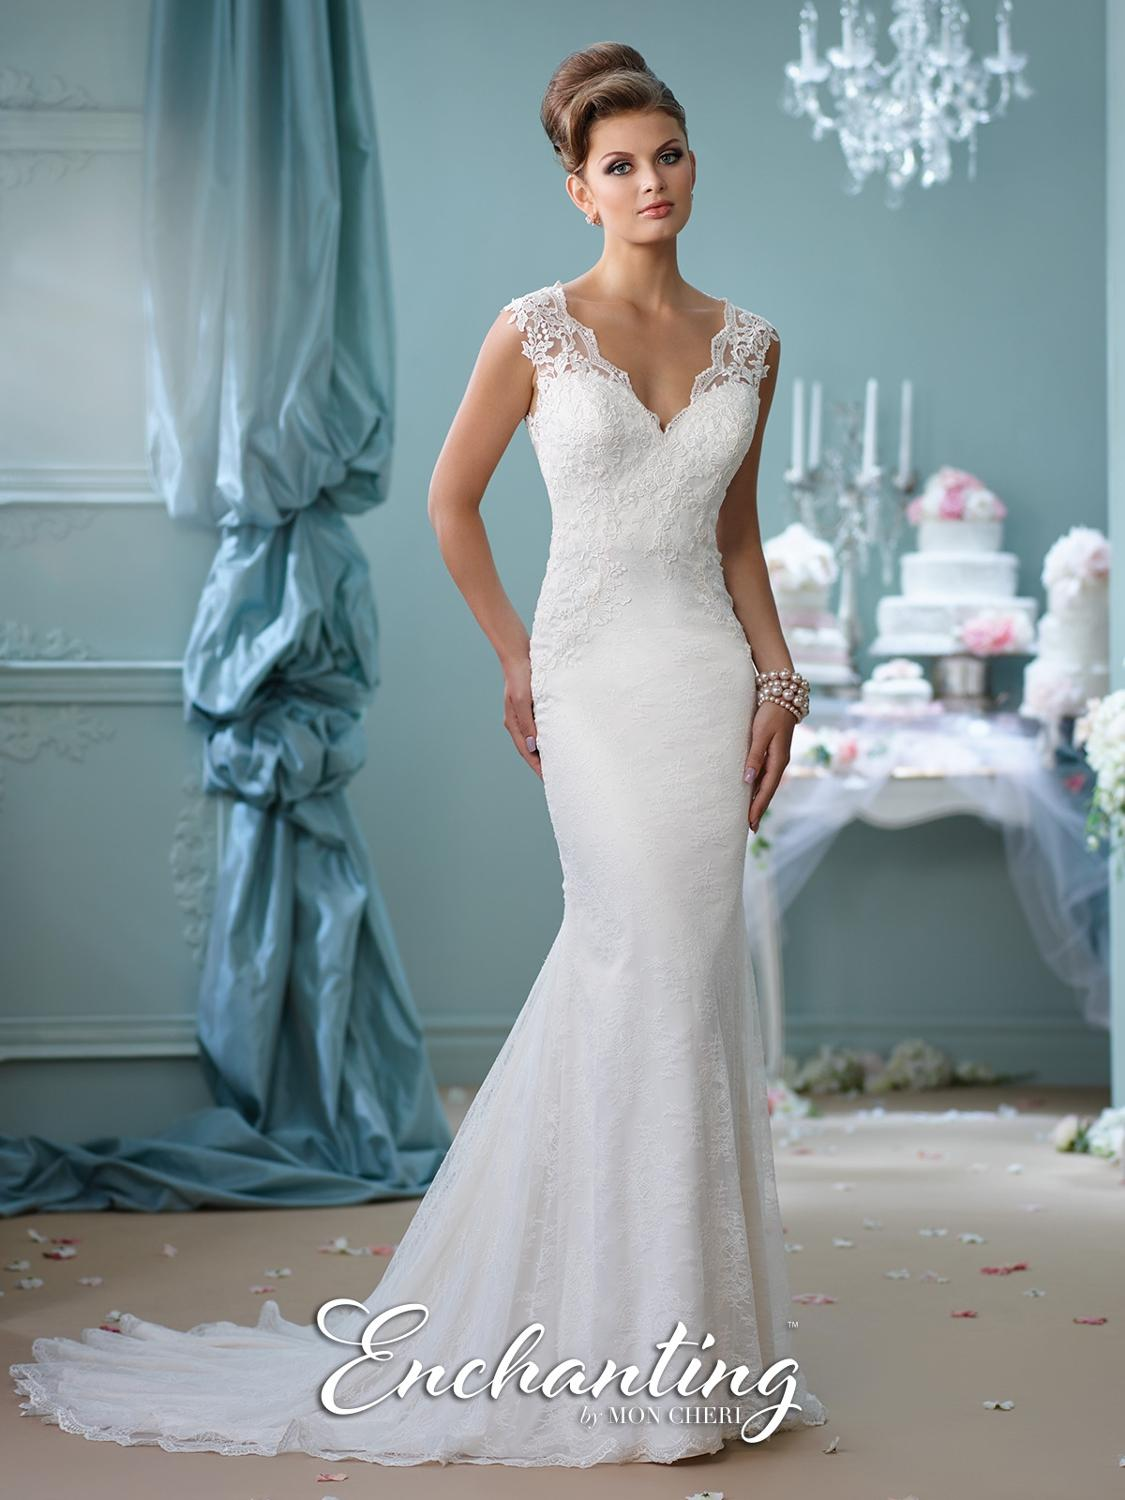 Contemporary Wedding Dress Stores In Nashville Tn Image - All ...